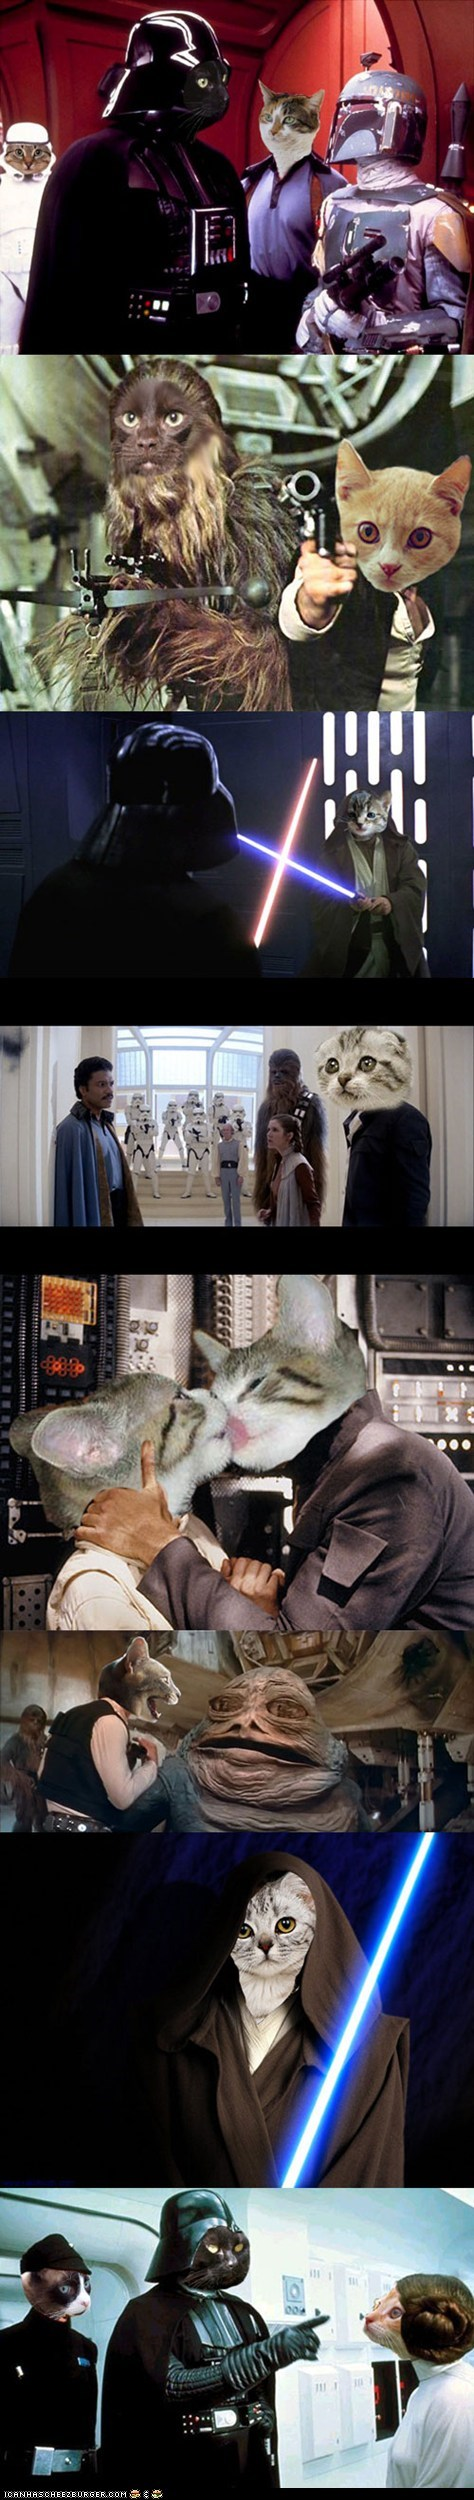 best of the week,Cats,movies,multipanel,photoshopped,star wars